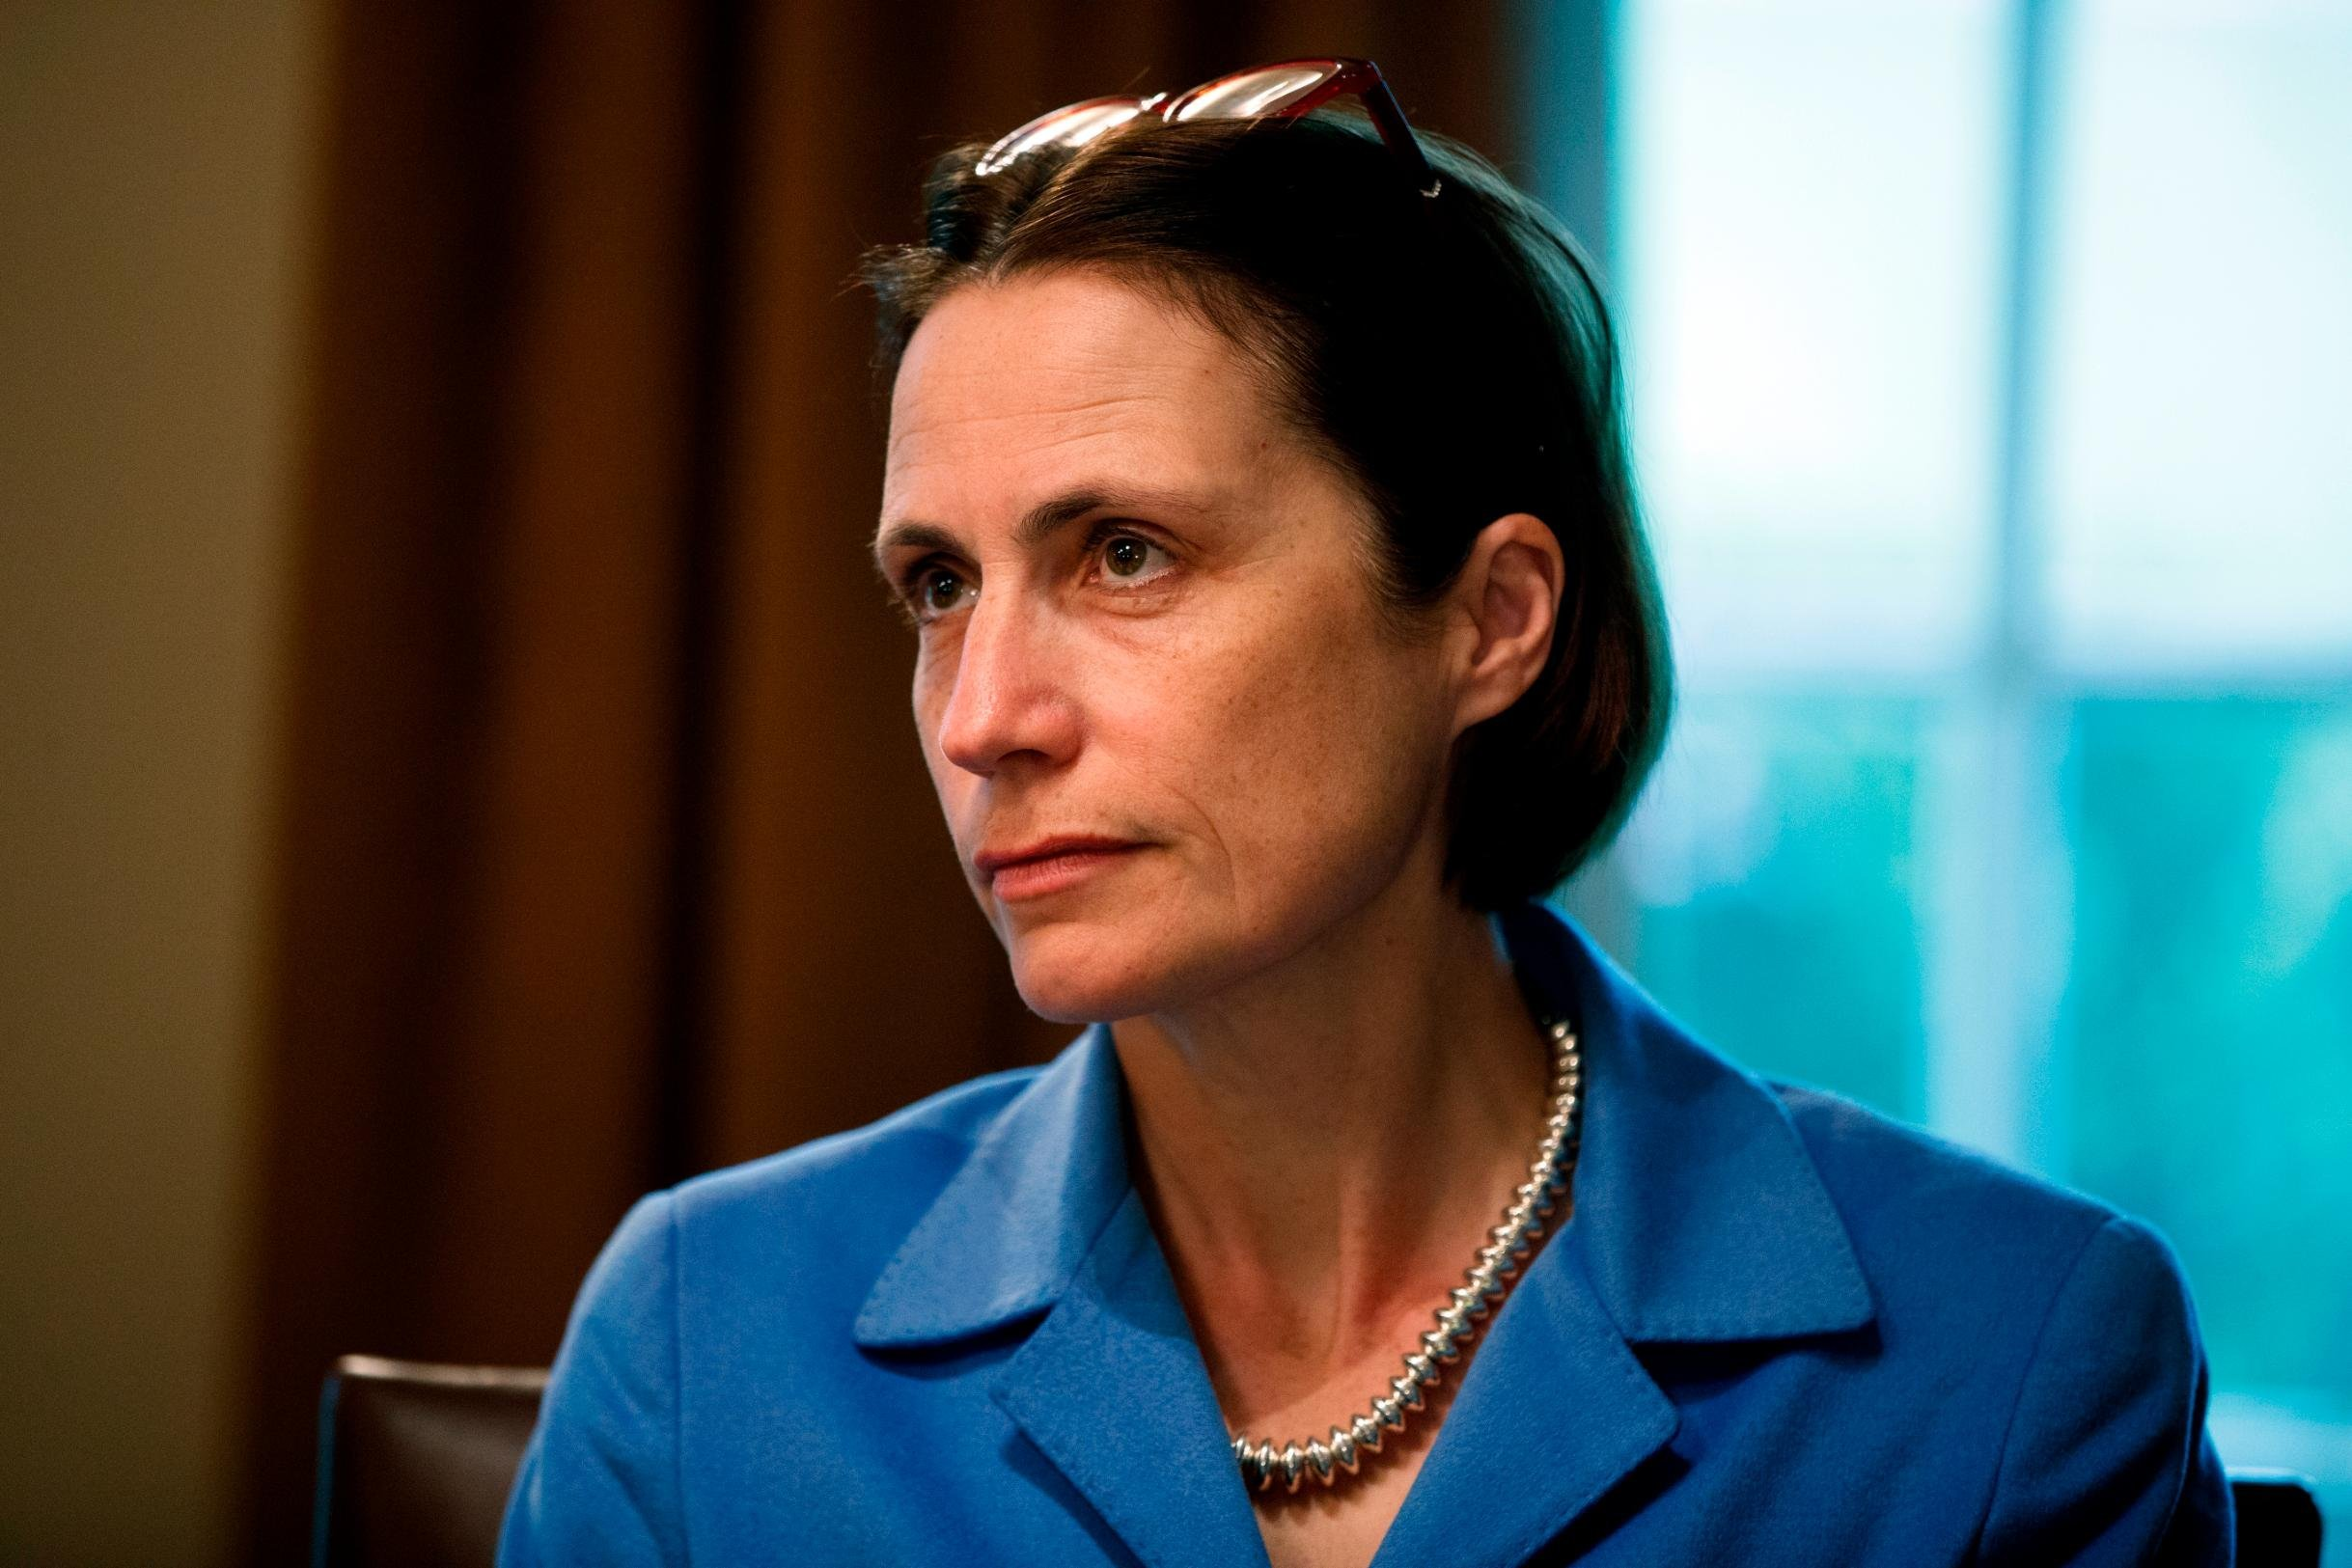 Fiona Hill was Trump's top Russia adviser. Now she's testifying on the Ukraine scandal